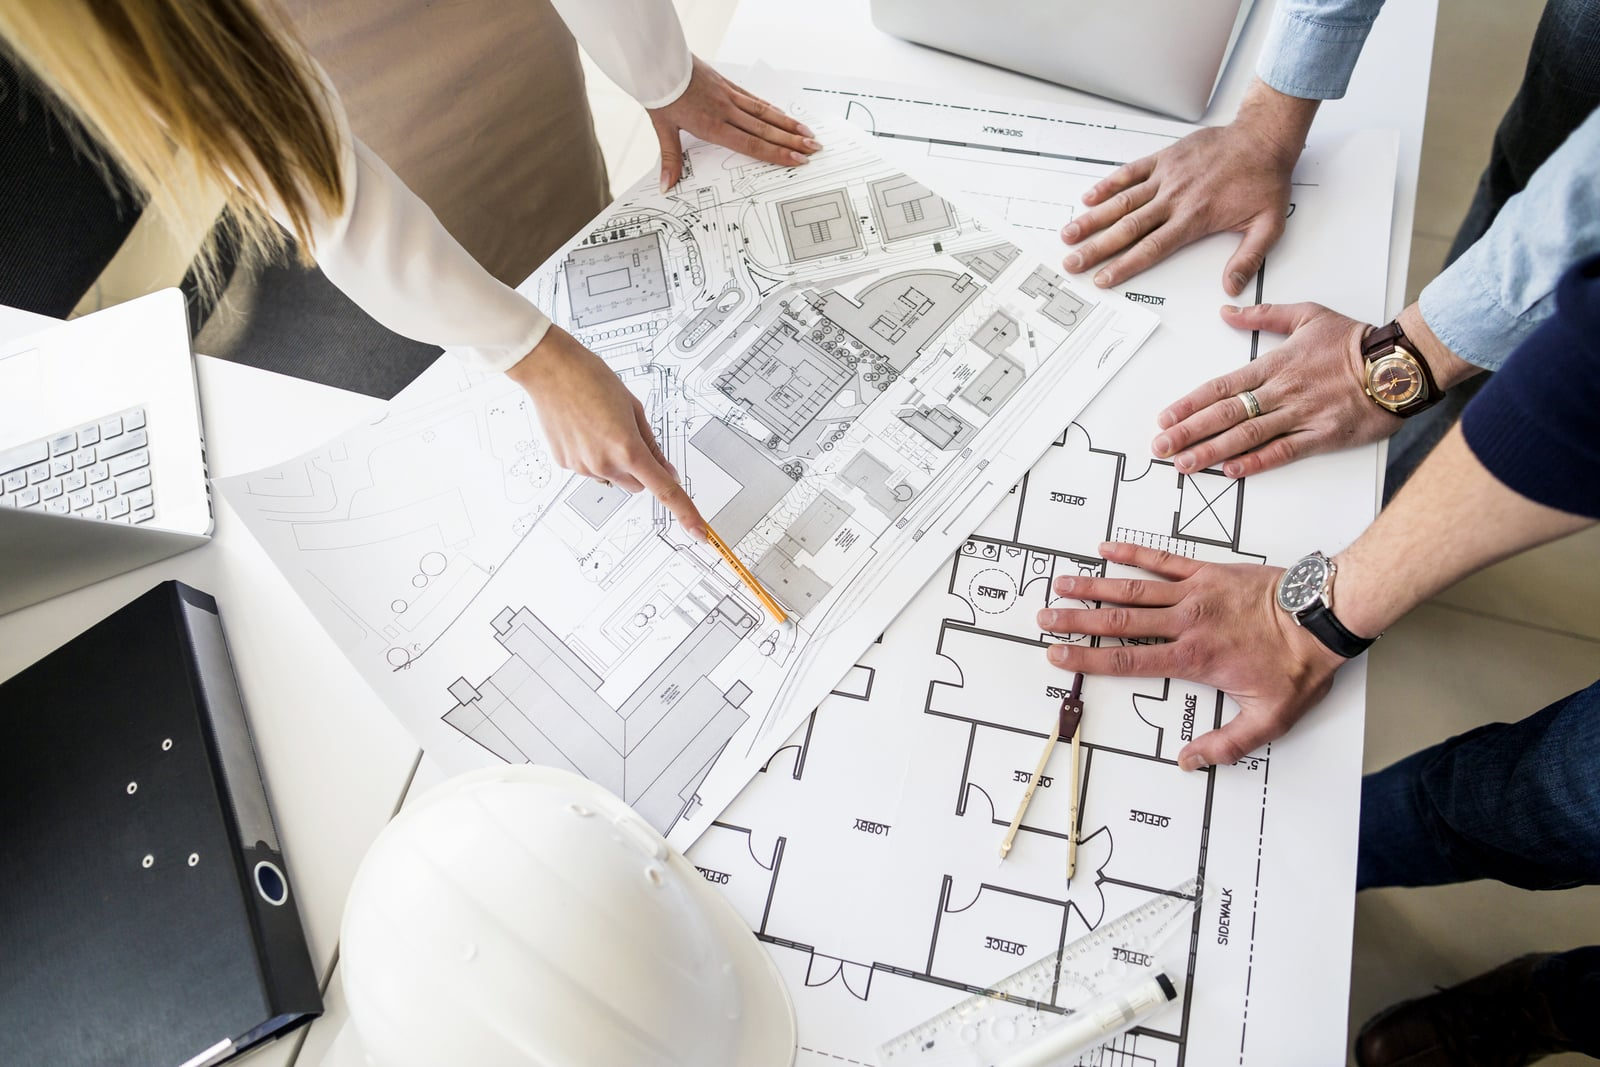 How to get an architecture job with no experience 2